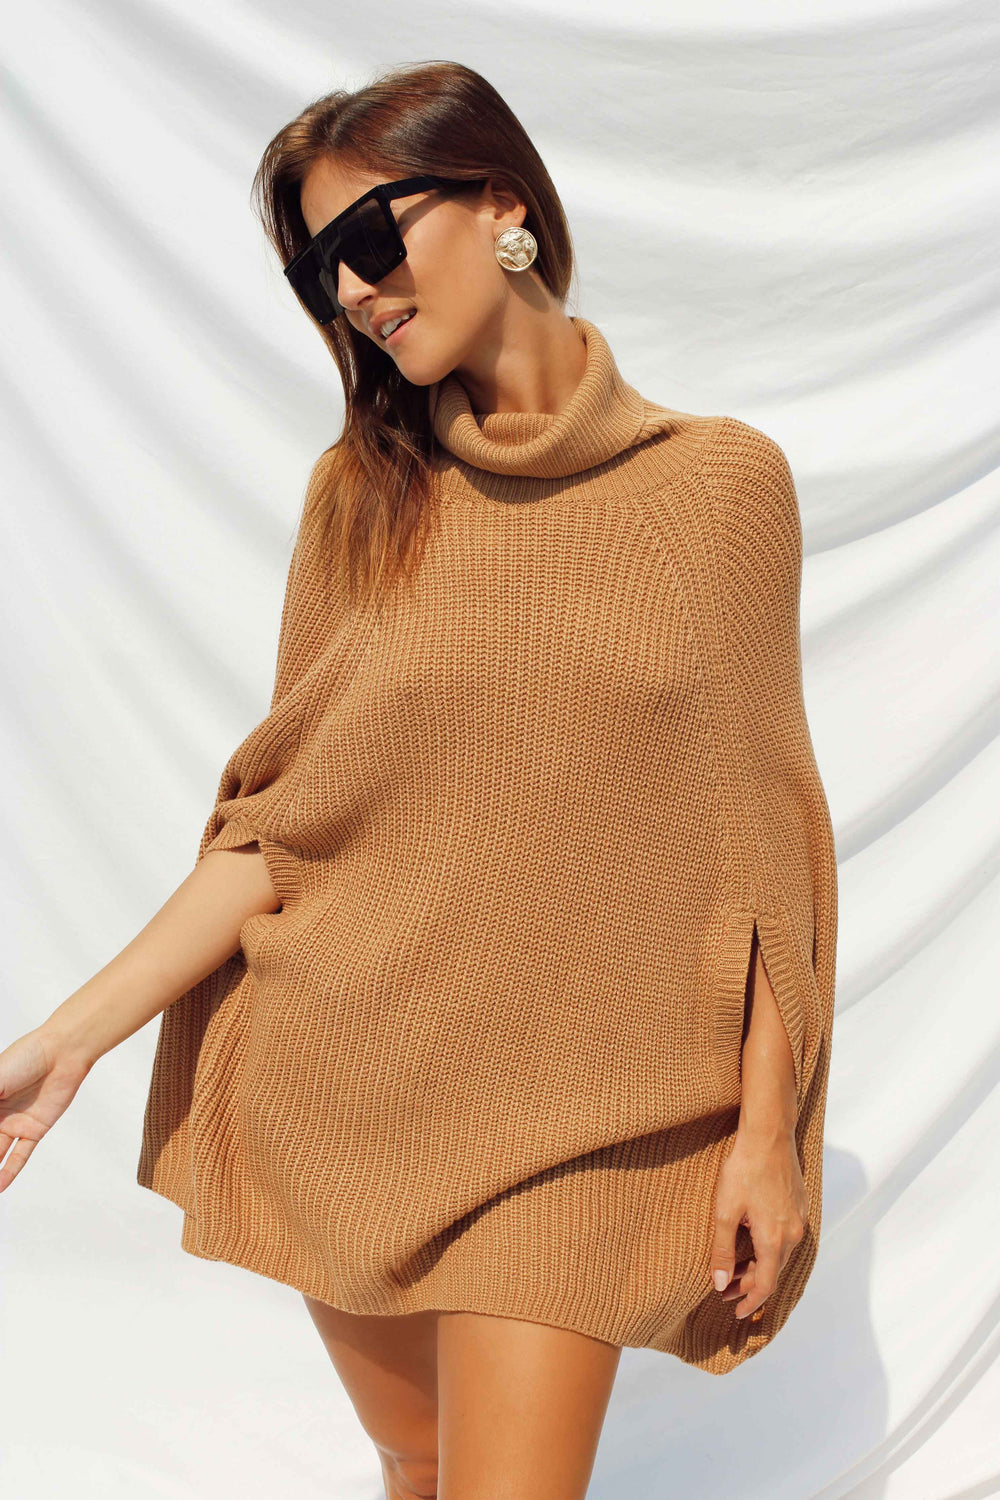 FERNANDA CAPE IN TAN - Chic Le Frique